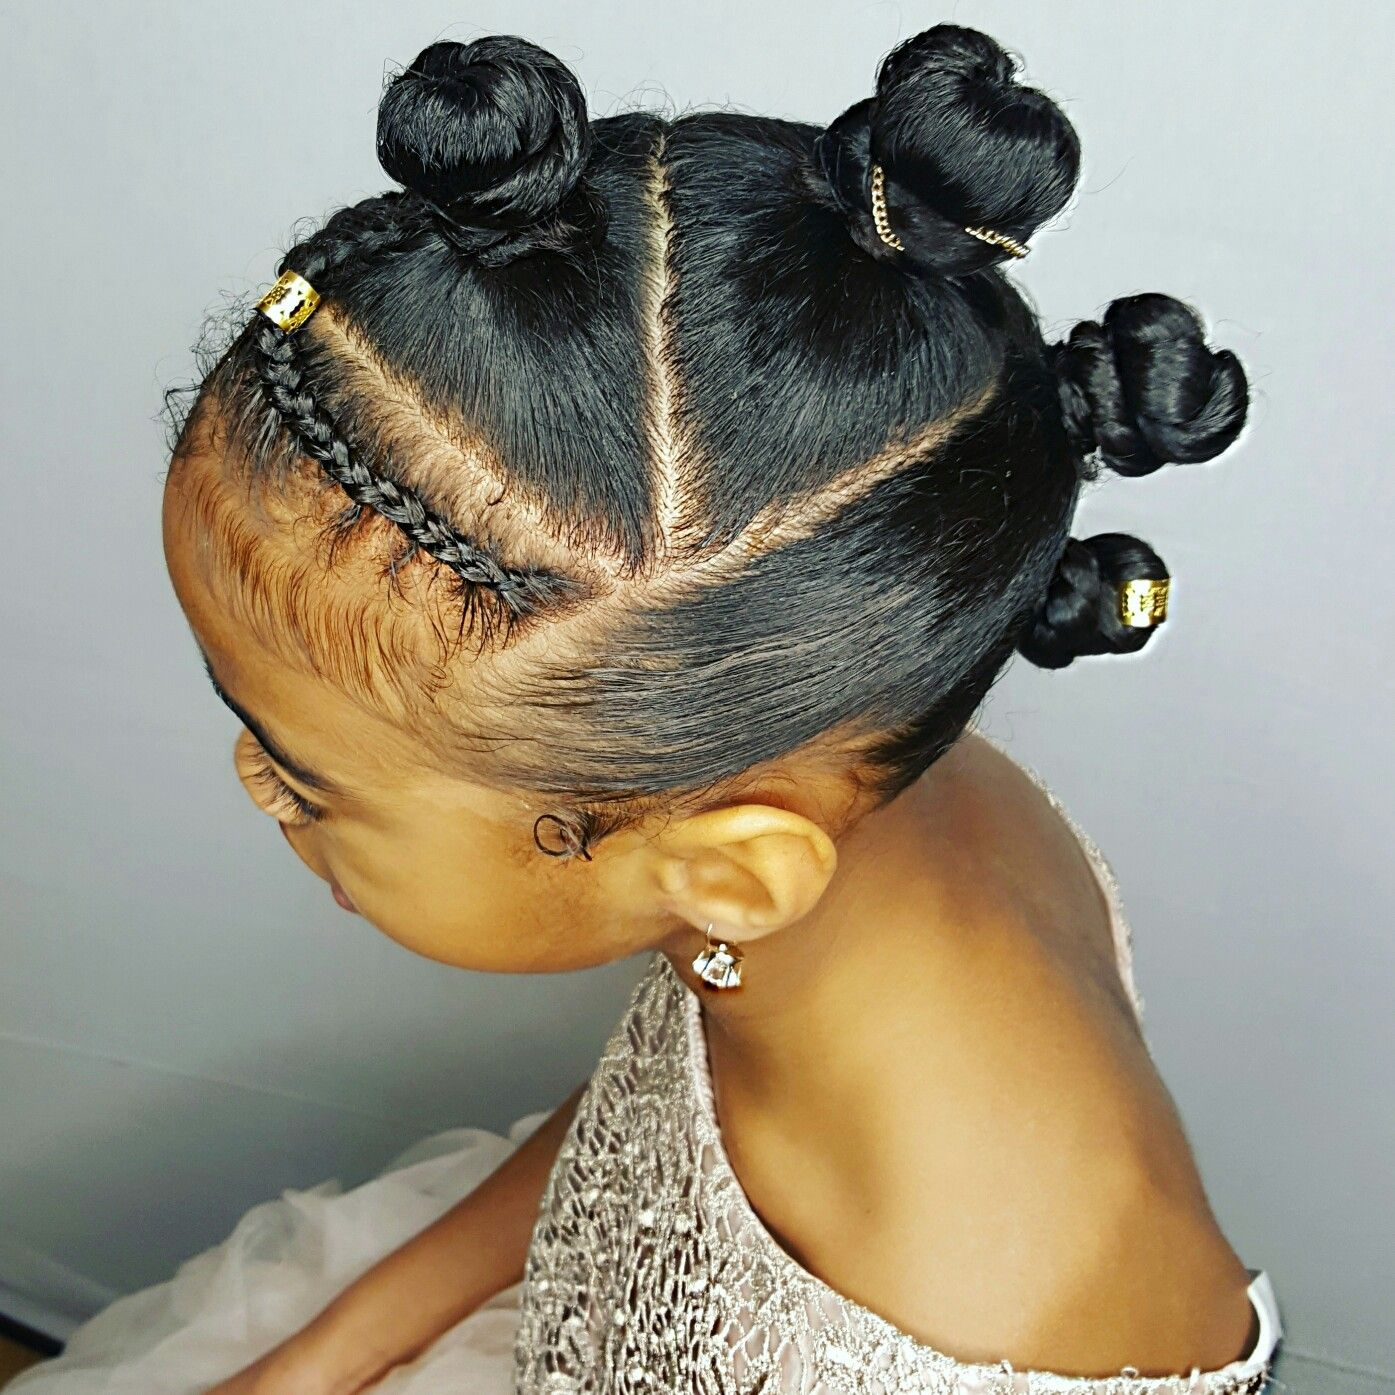 Coiffure Afro Bantu Knots Bantuknots Updo Curly Girls Hairstyle Braids Girls